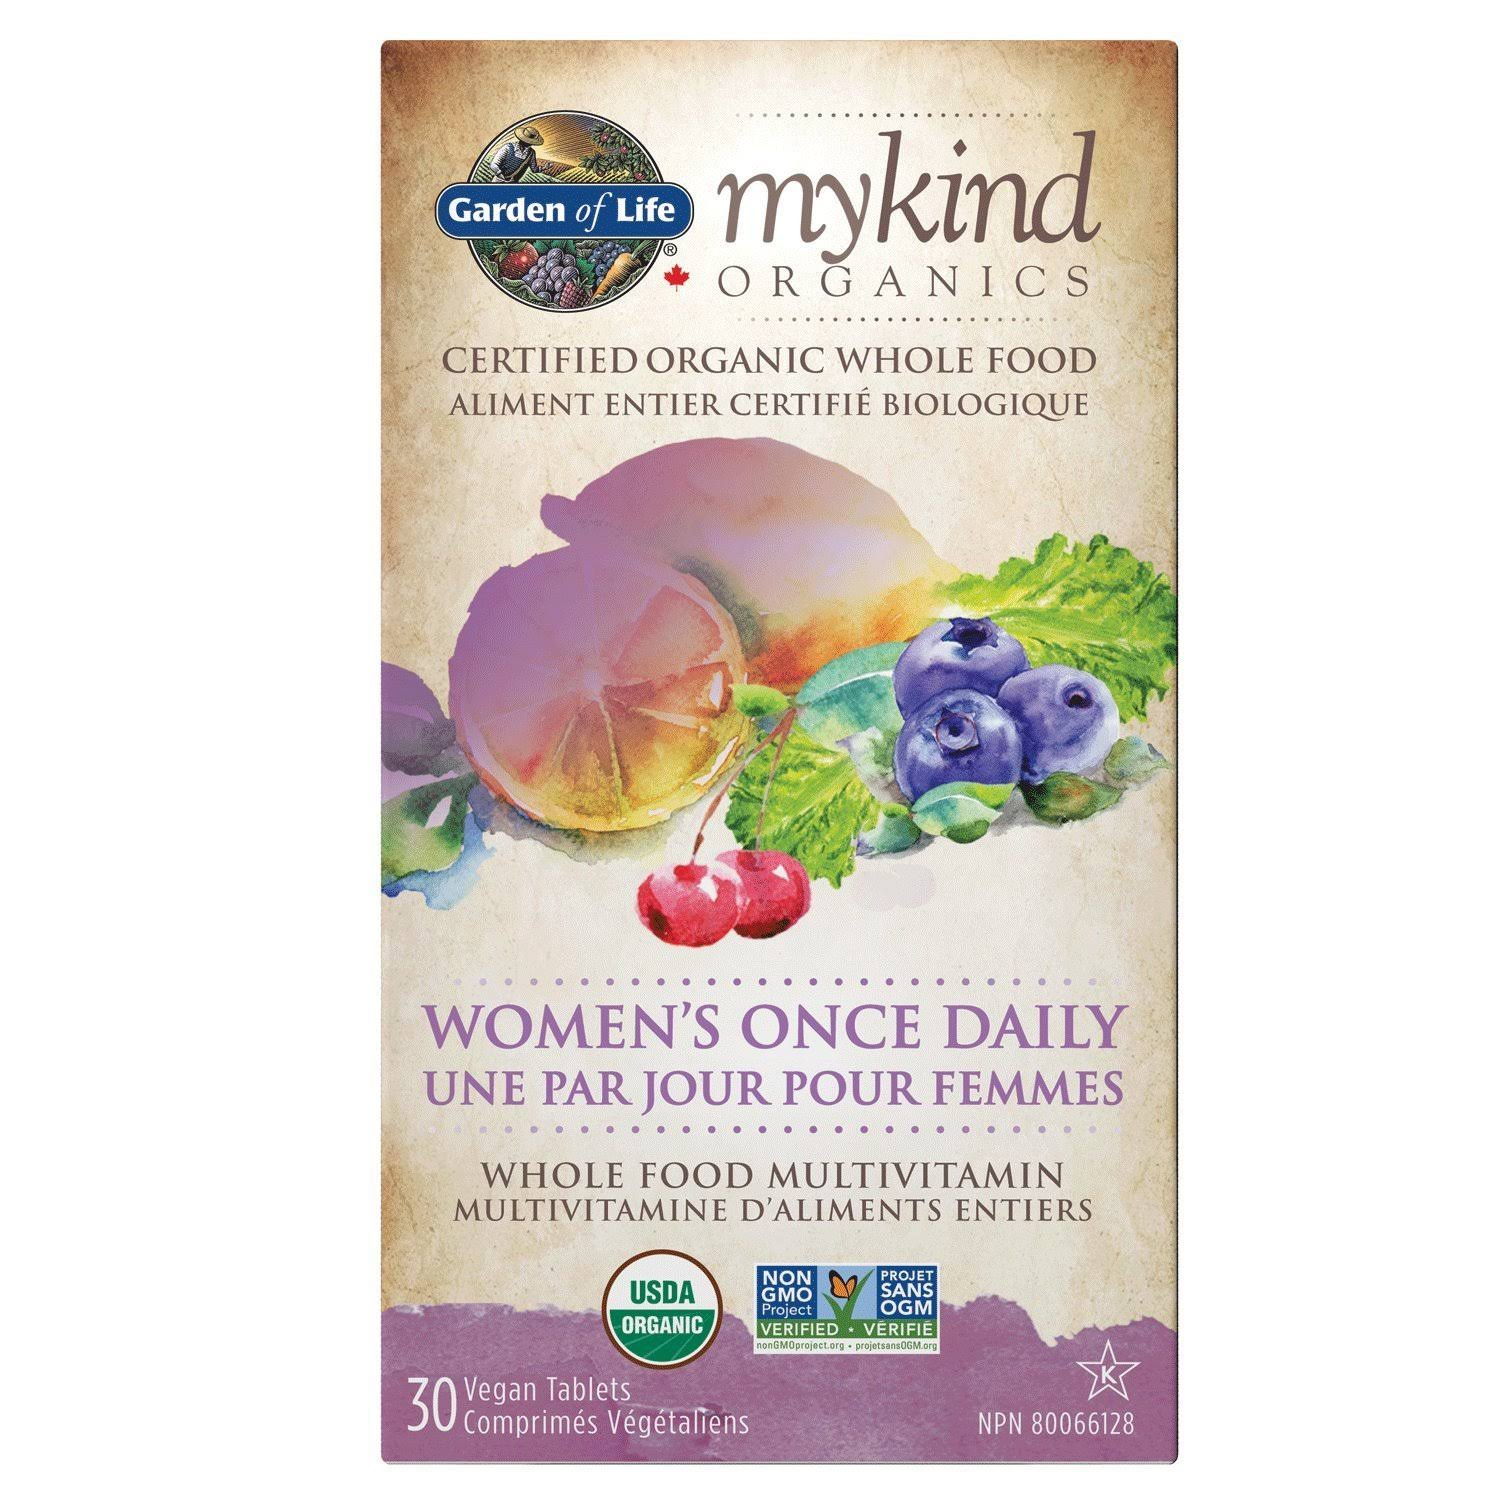 mykind Organics Multivitamin - Women's Once Daily ( 30 V-Tabs )